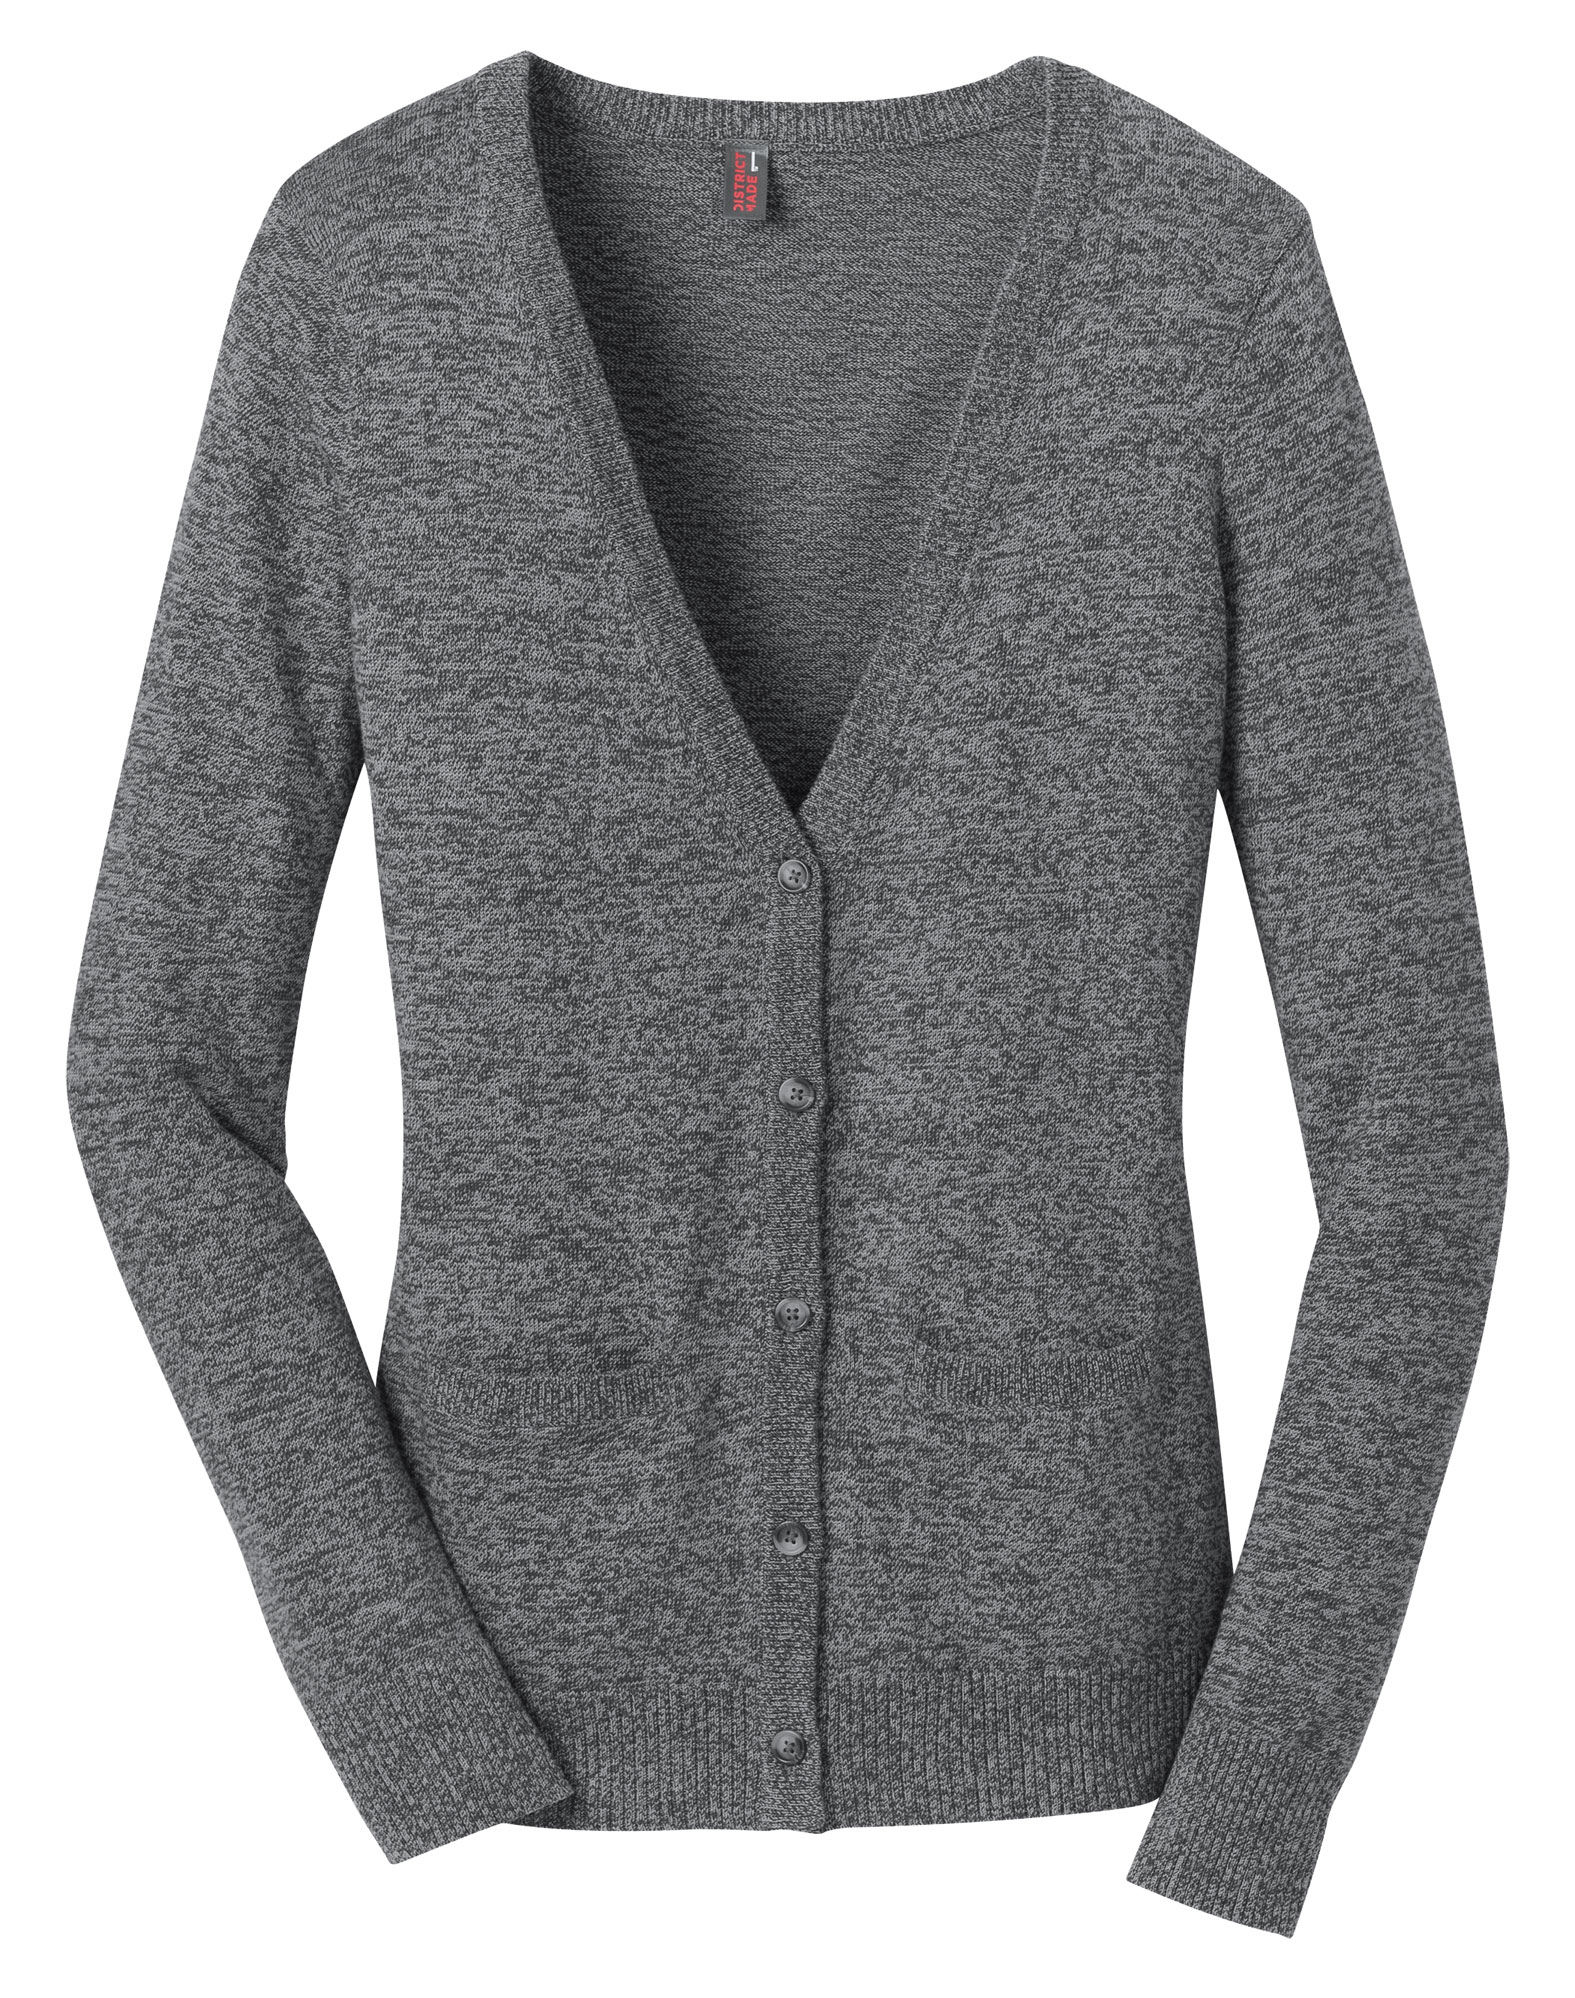 District Made� Ladies Cardigan Sweater